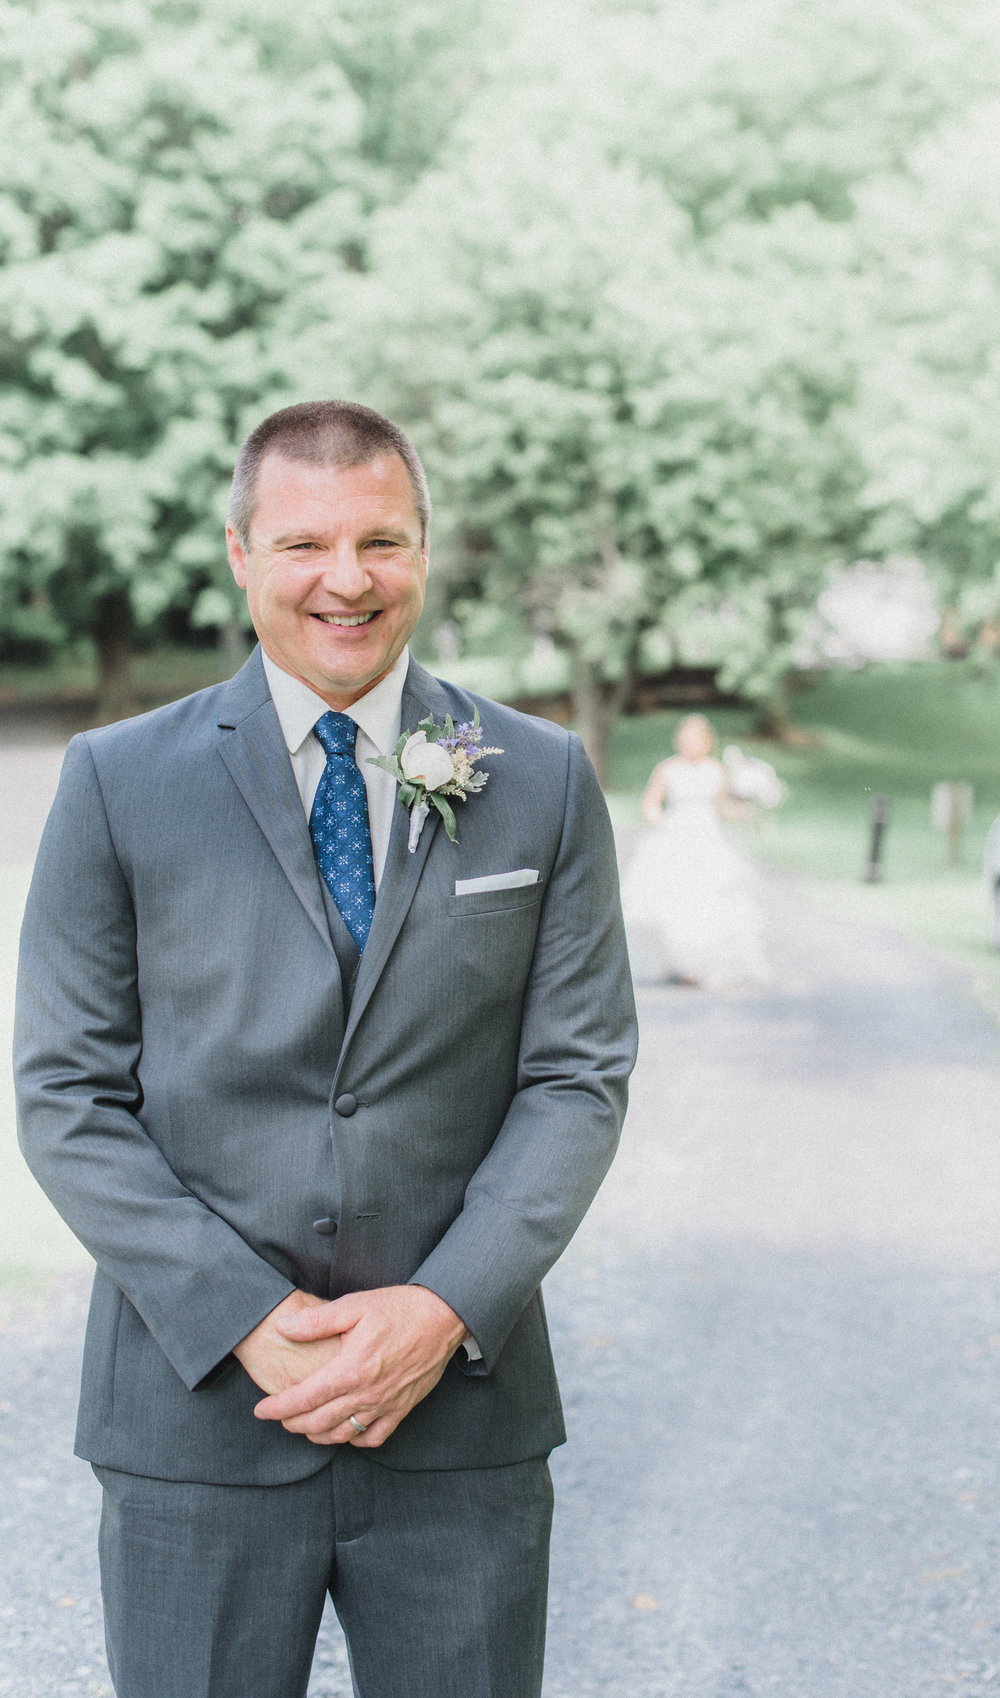 This grinning father proudly wears his peony bud boutonniere as he waits for his father-daughter first look! A really fun and special moment to include in your day.